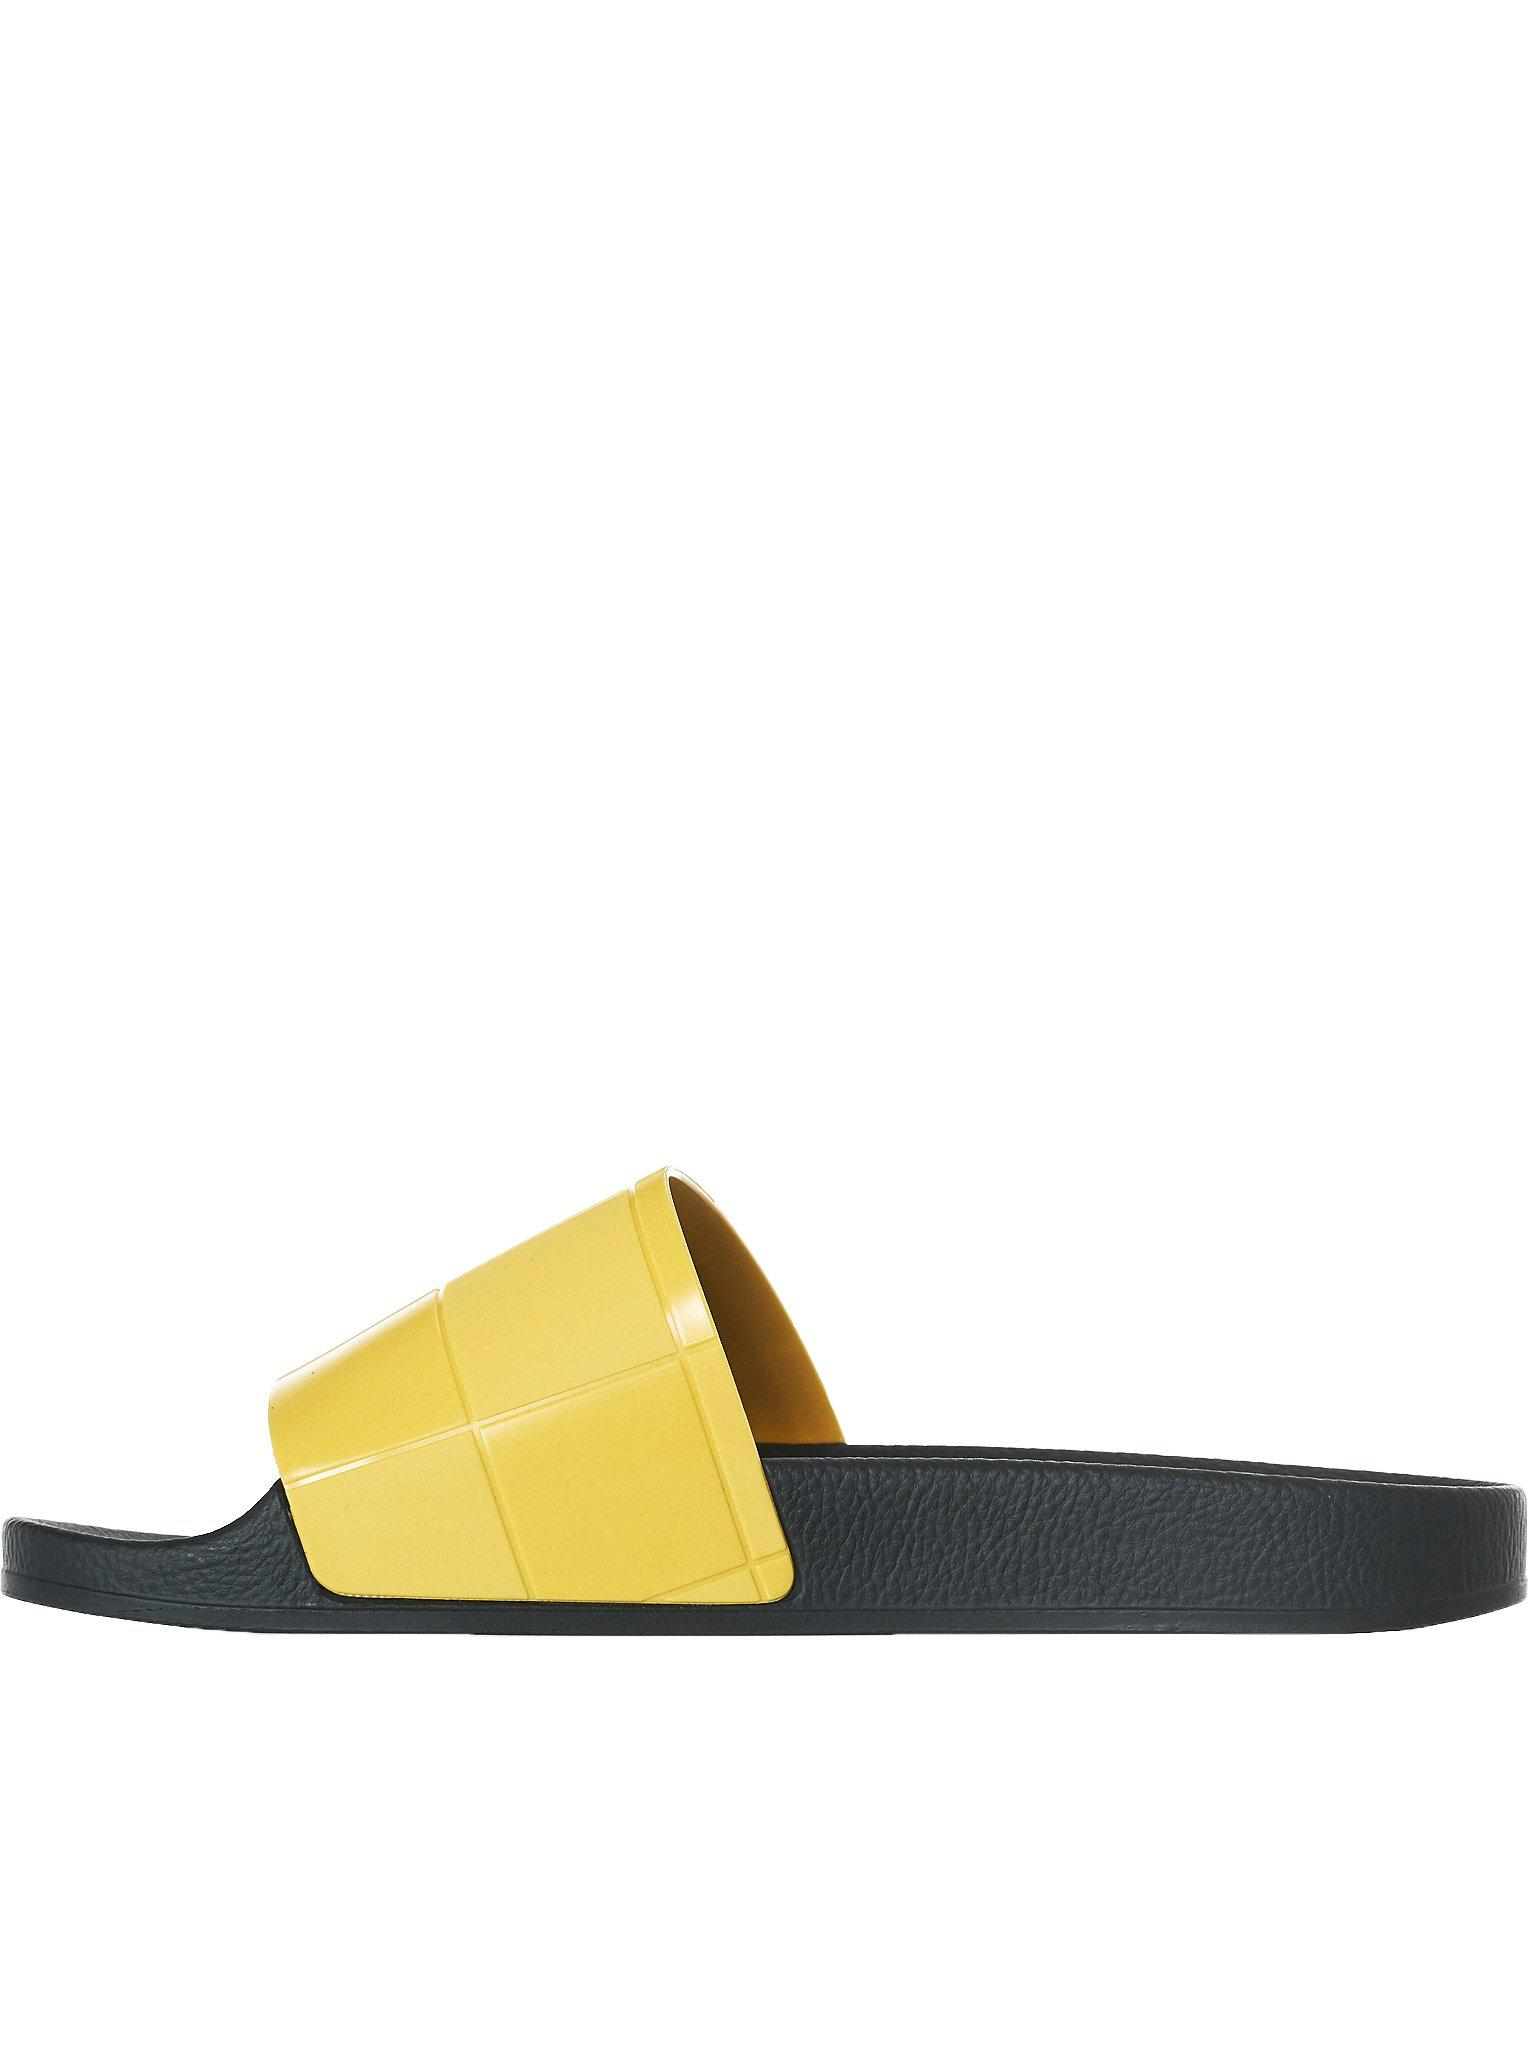 9febc09e276 Lyst - Raf Simons Adilette Checkerboard Slides in Yellow for Men